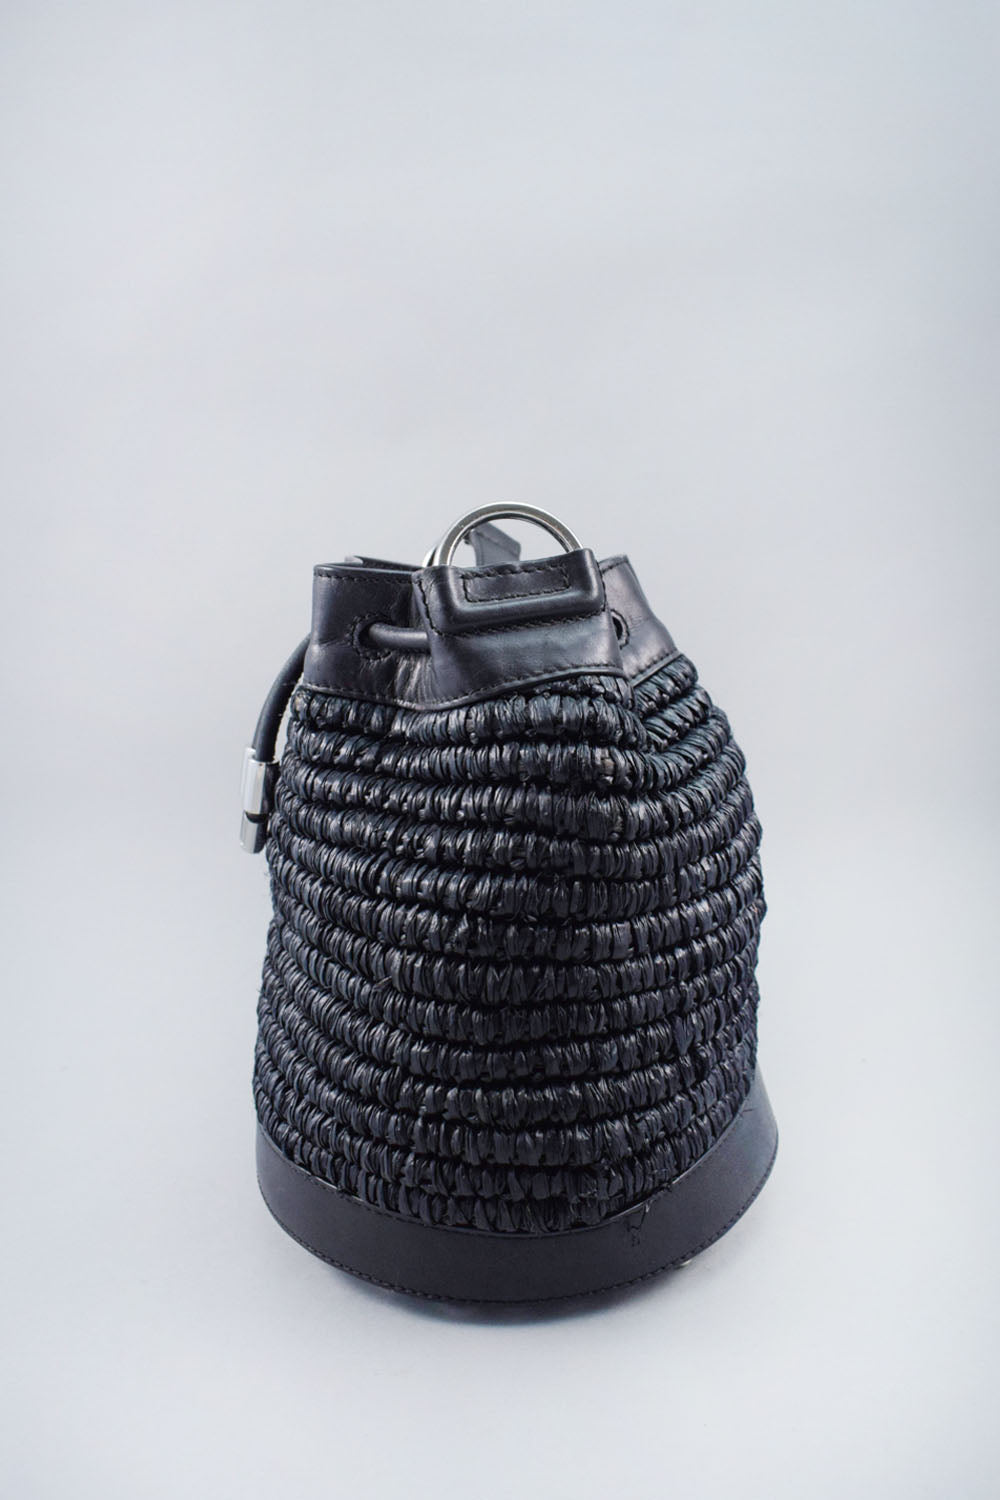 Alexander Wang Black Woven Bucket Bag Crossbody